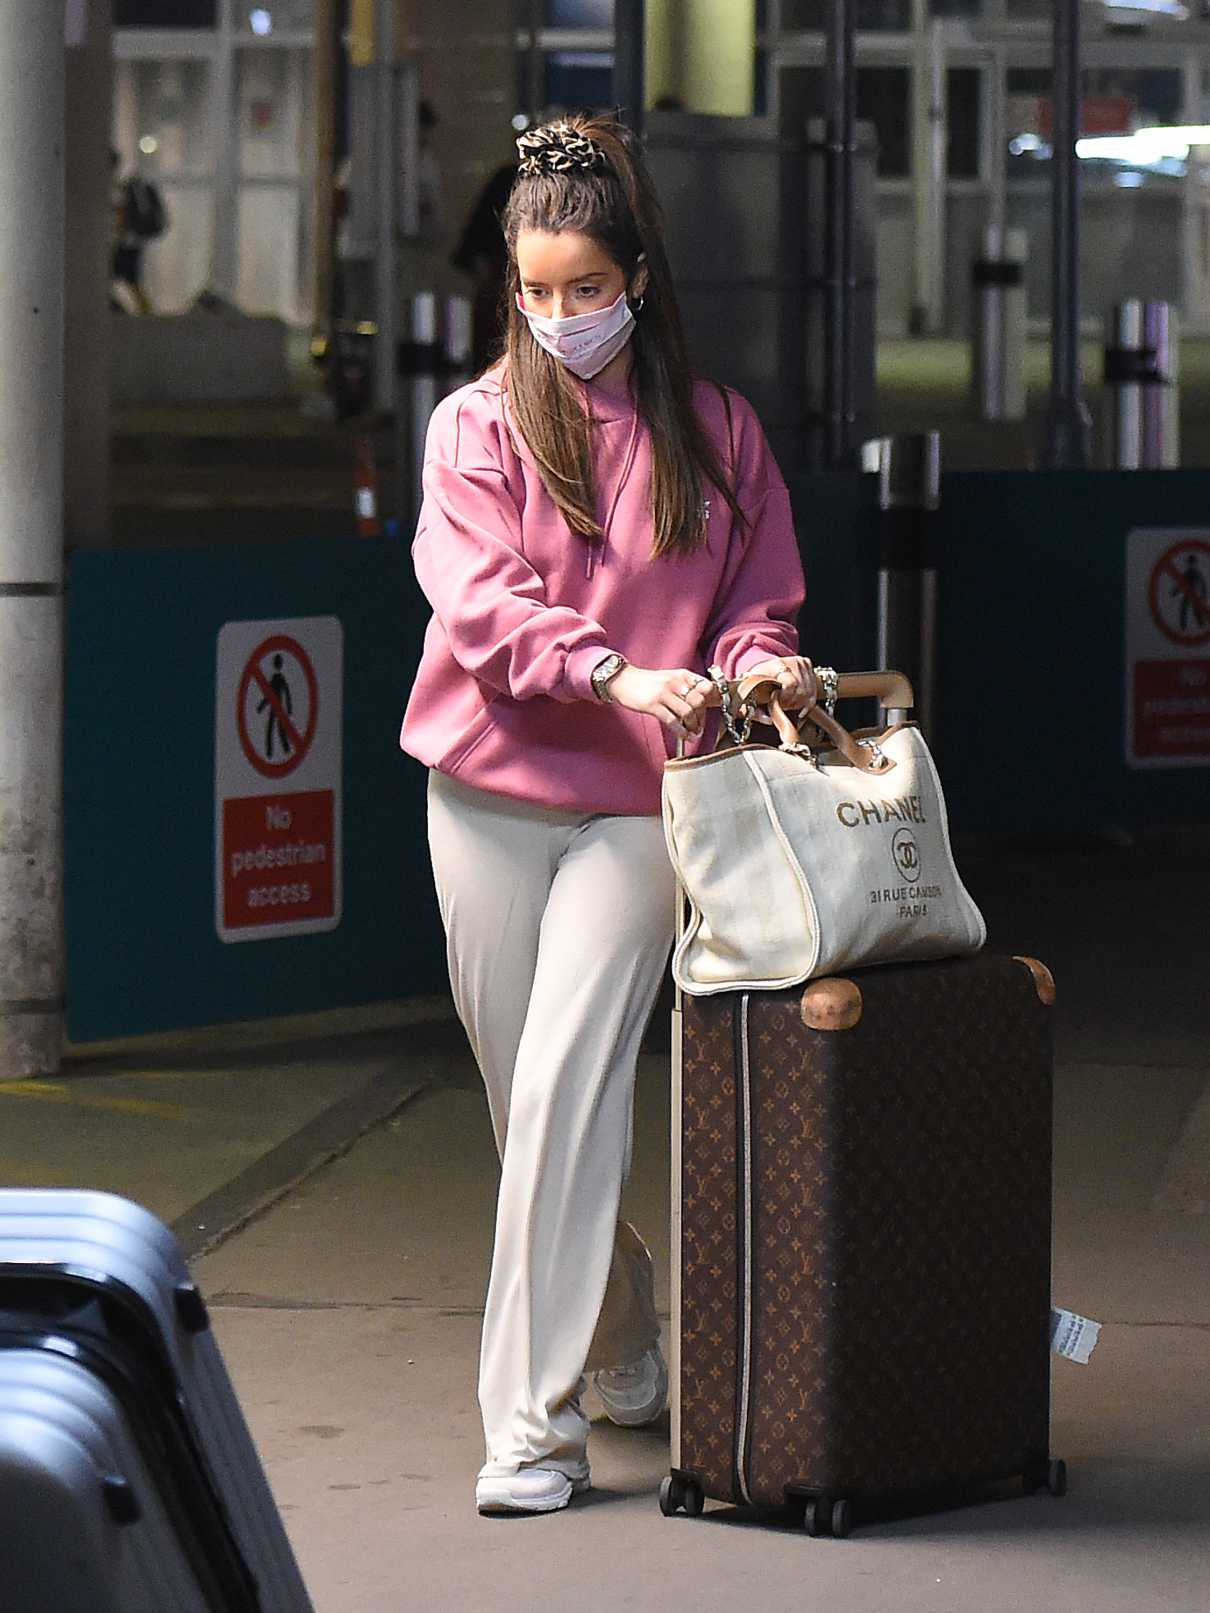 Maura Higgins in a Pink Hoody Arrives at Gatwick Airport in London 08/18/2020